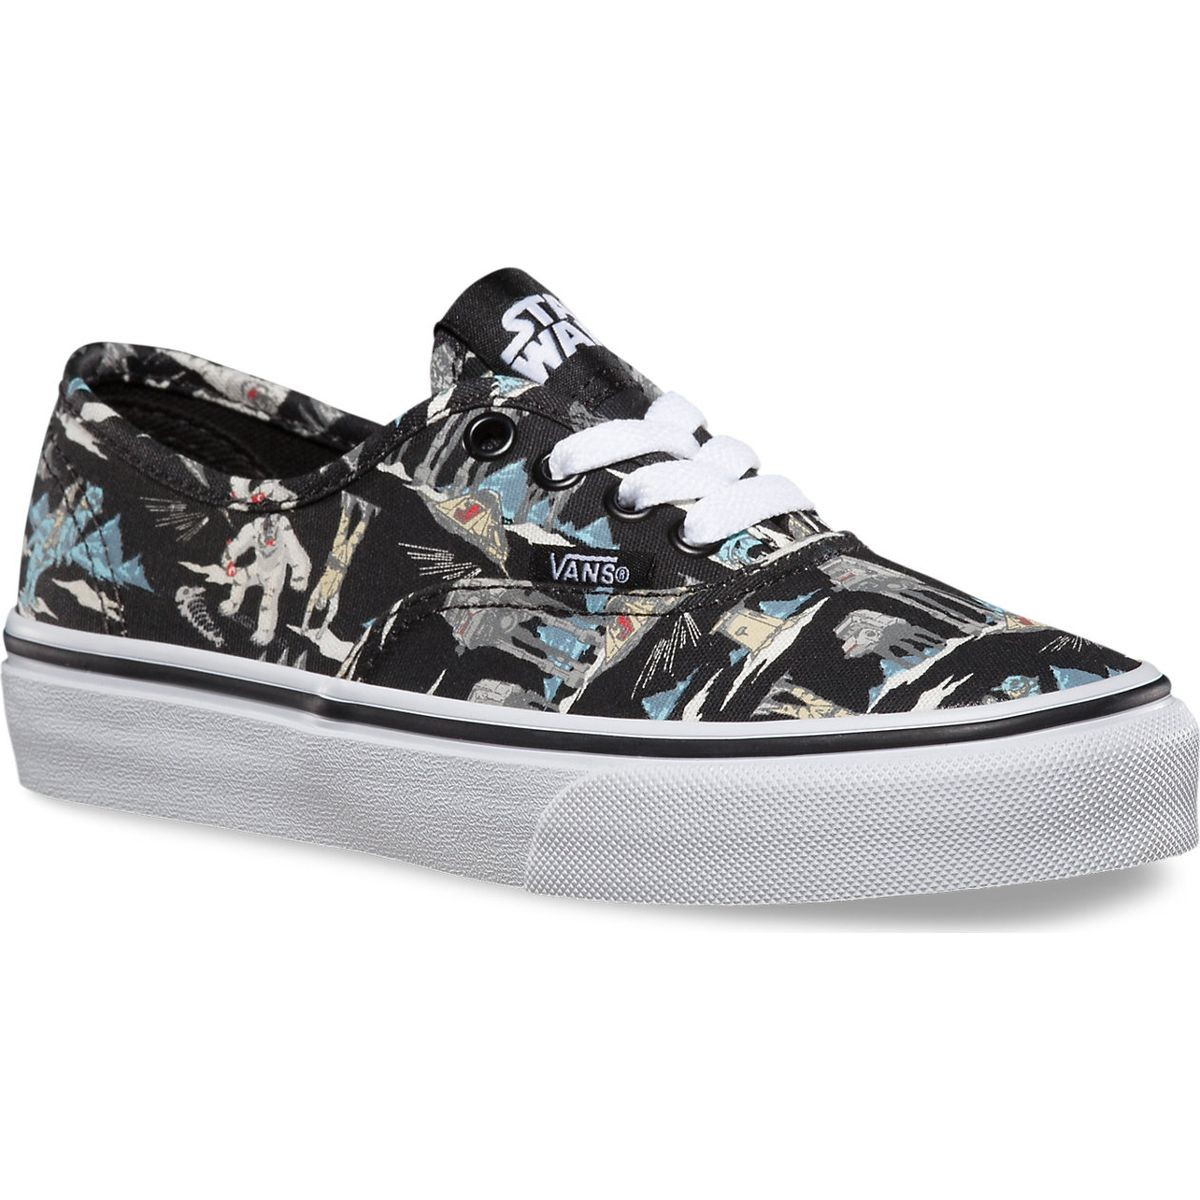 4d4978a41f5a Buy 2 OFF ANY kids vans shoes online CASE AND GET 70% OFF!